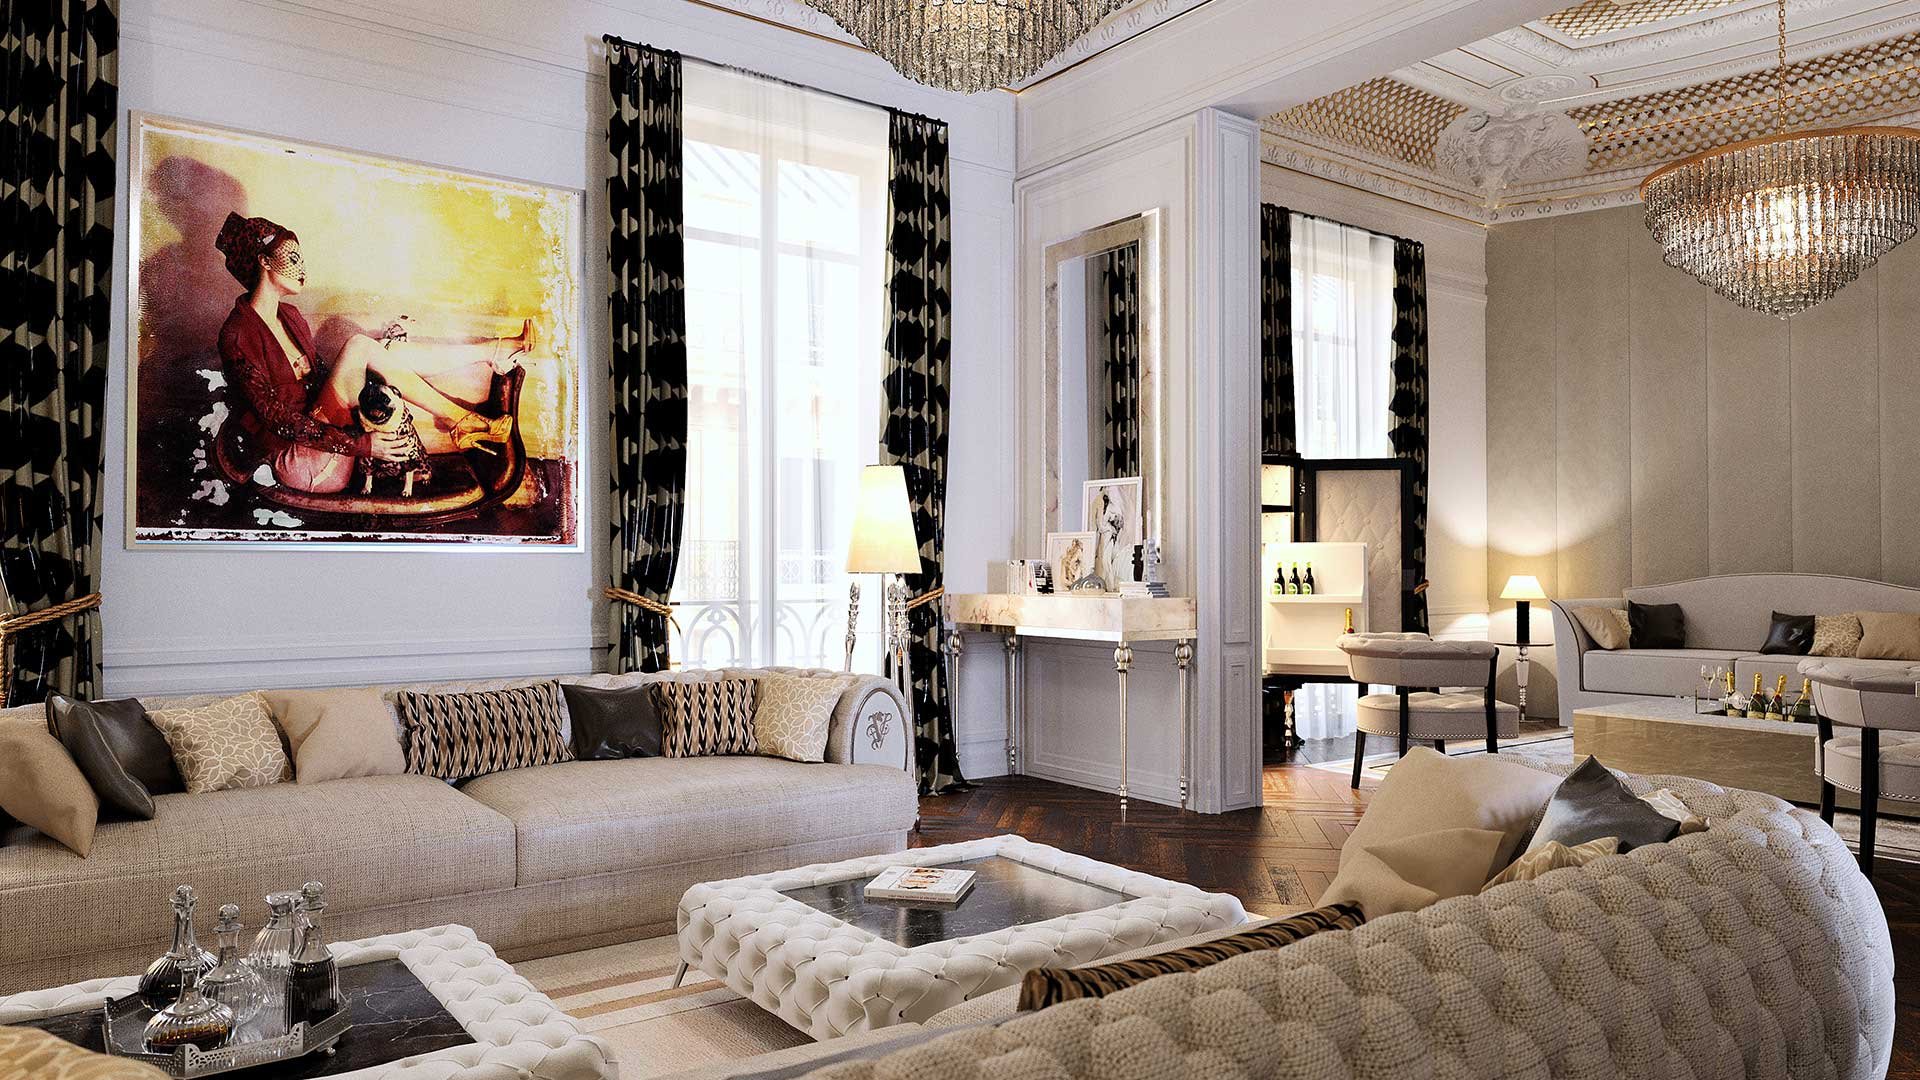 agency 3d lyon 3d creative studio luxurious living room. Black Bedroom Furniture Sets. Home Design Ideas